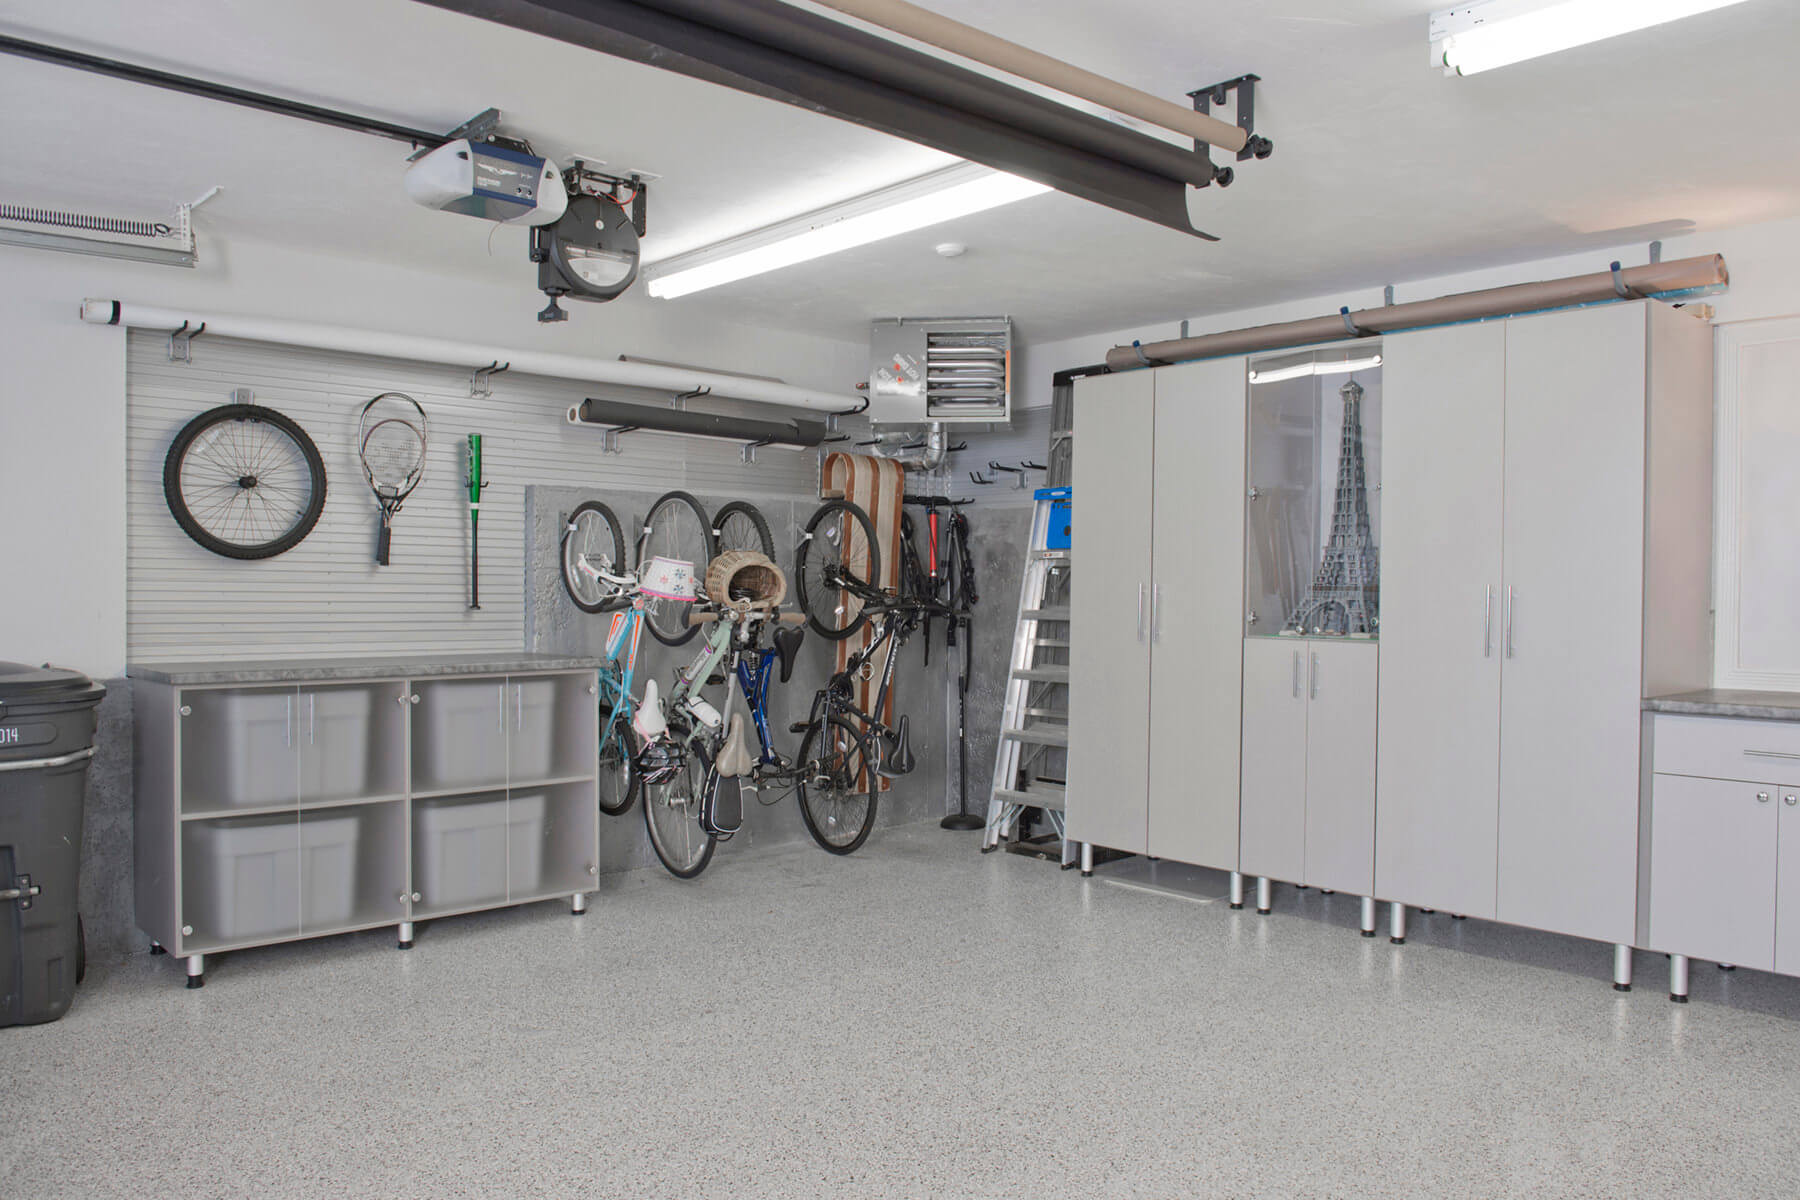 An example of a well-organzed garage using a slatwall, vertical bicycle storage and garage cabinets. All storage implements are in off white to match garage interior. Garage floor is a polyaspartic flooring (see section C below).